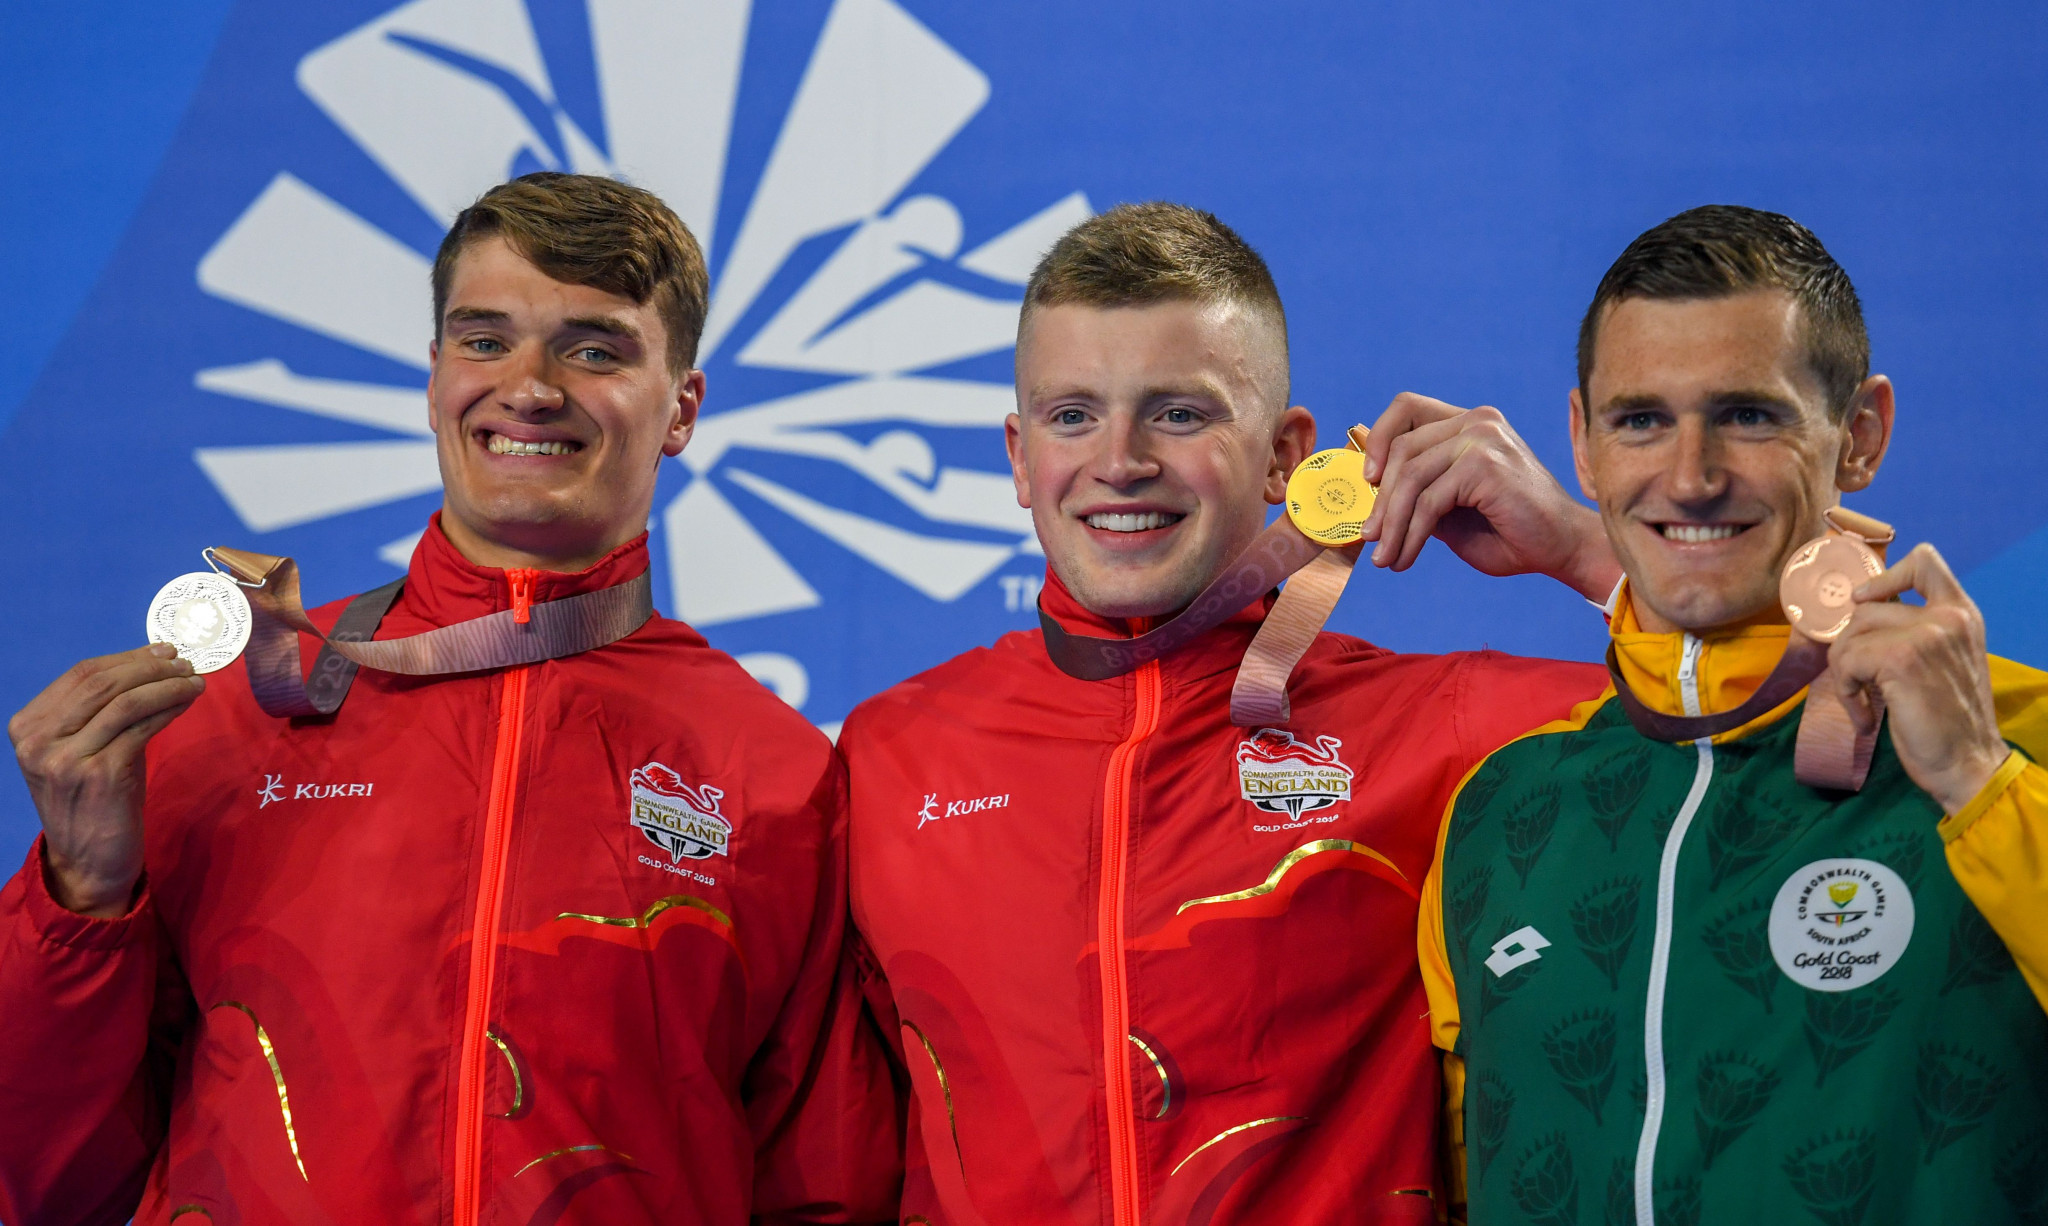 James Wilby, left, and Adam Peaty, centre, on the podium at the 2018 Commonwealth Games ©Getty Images